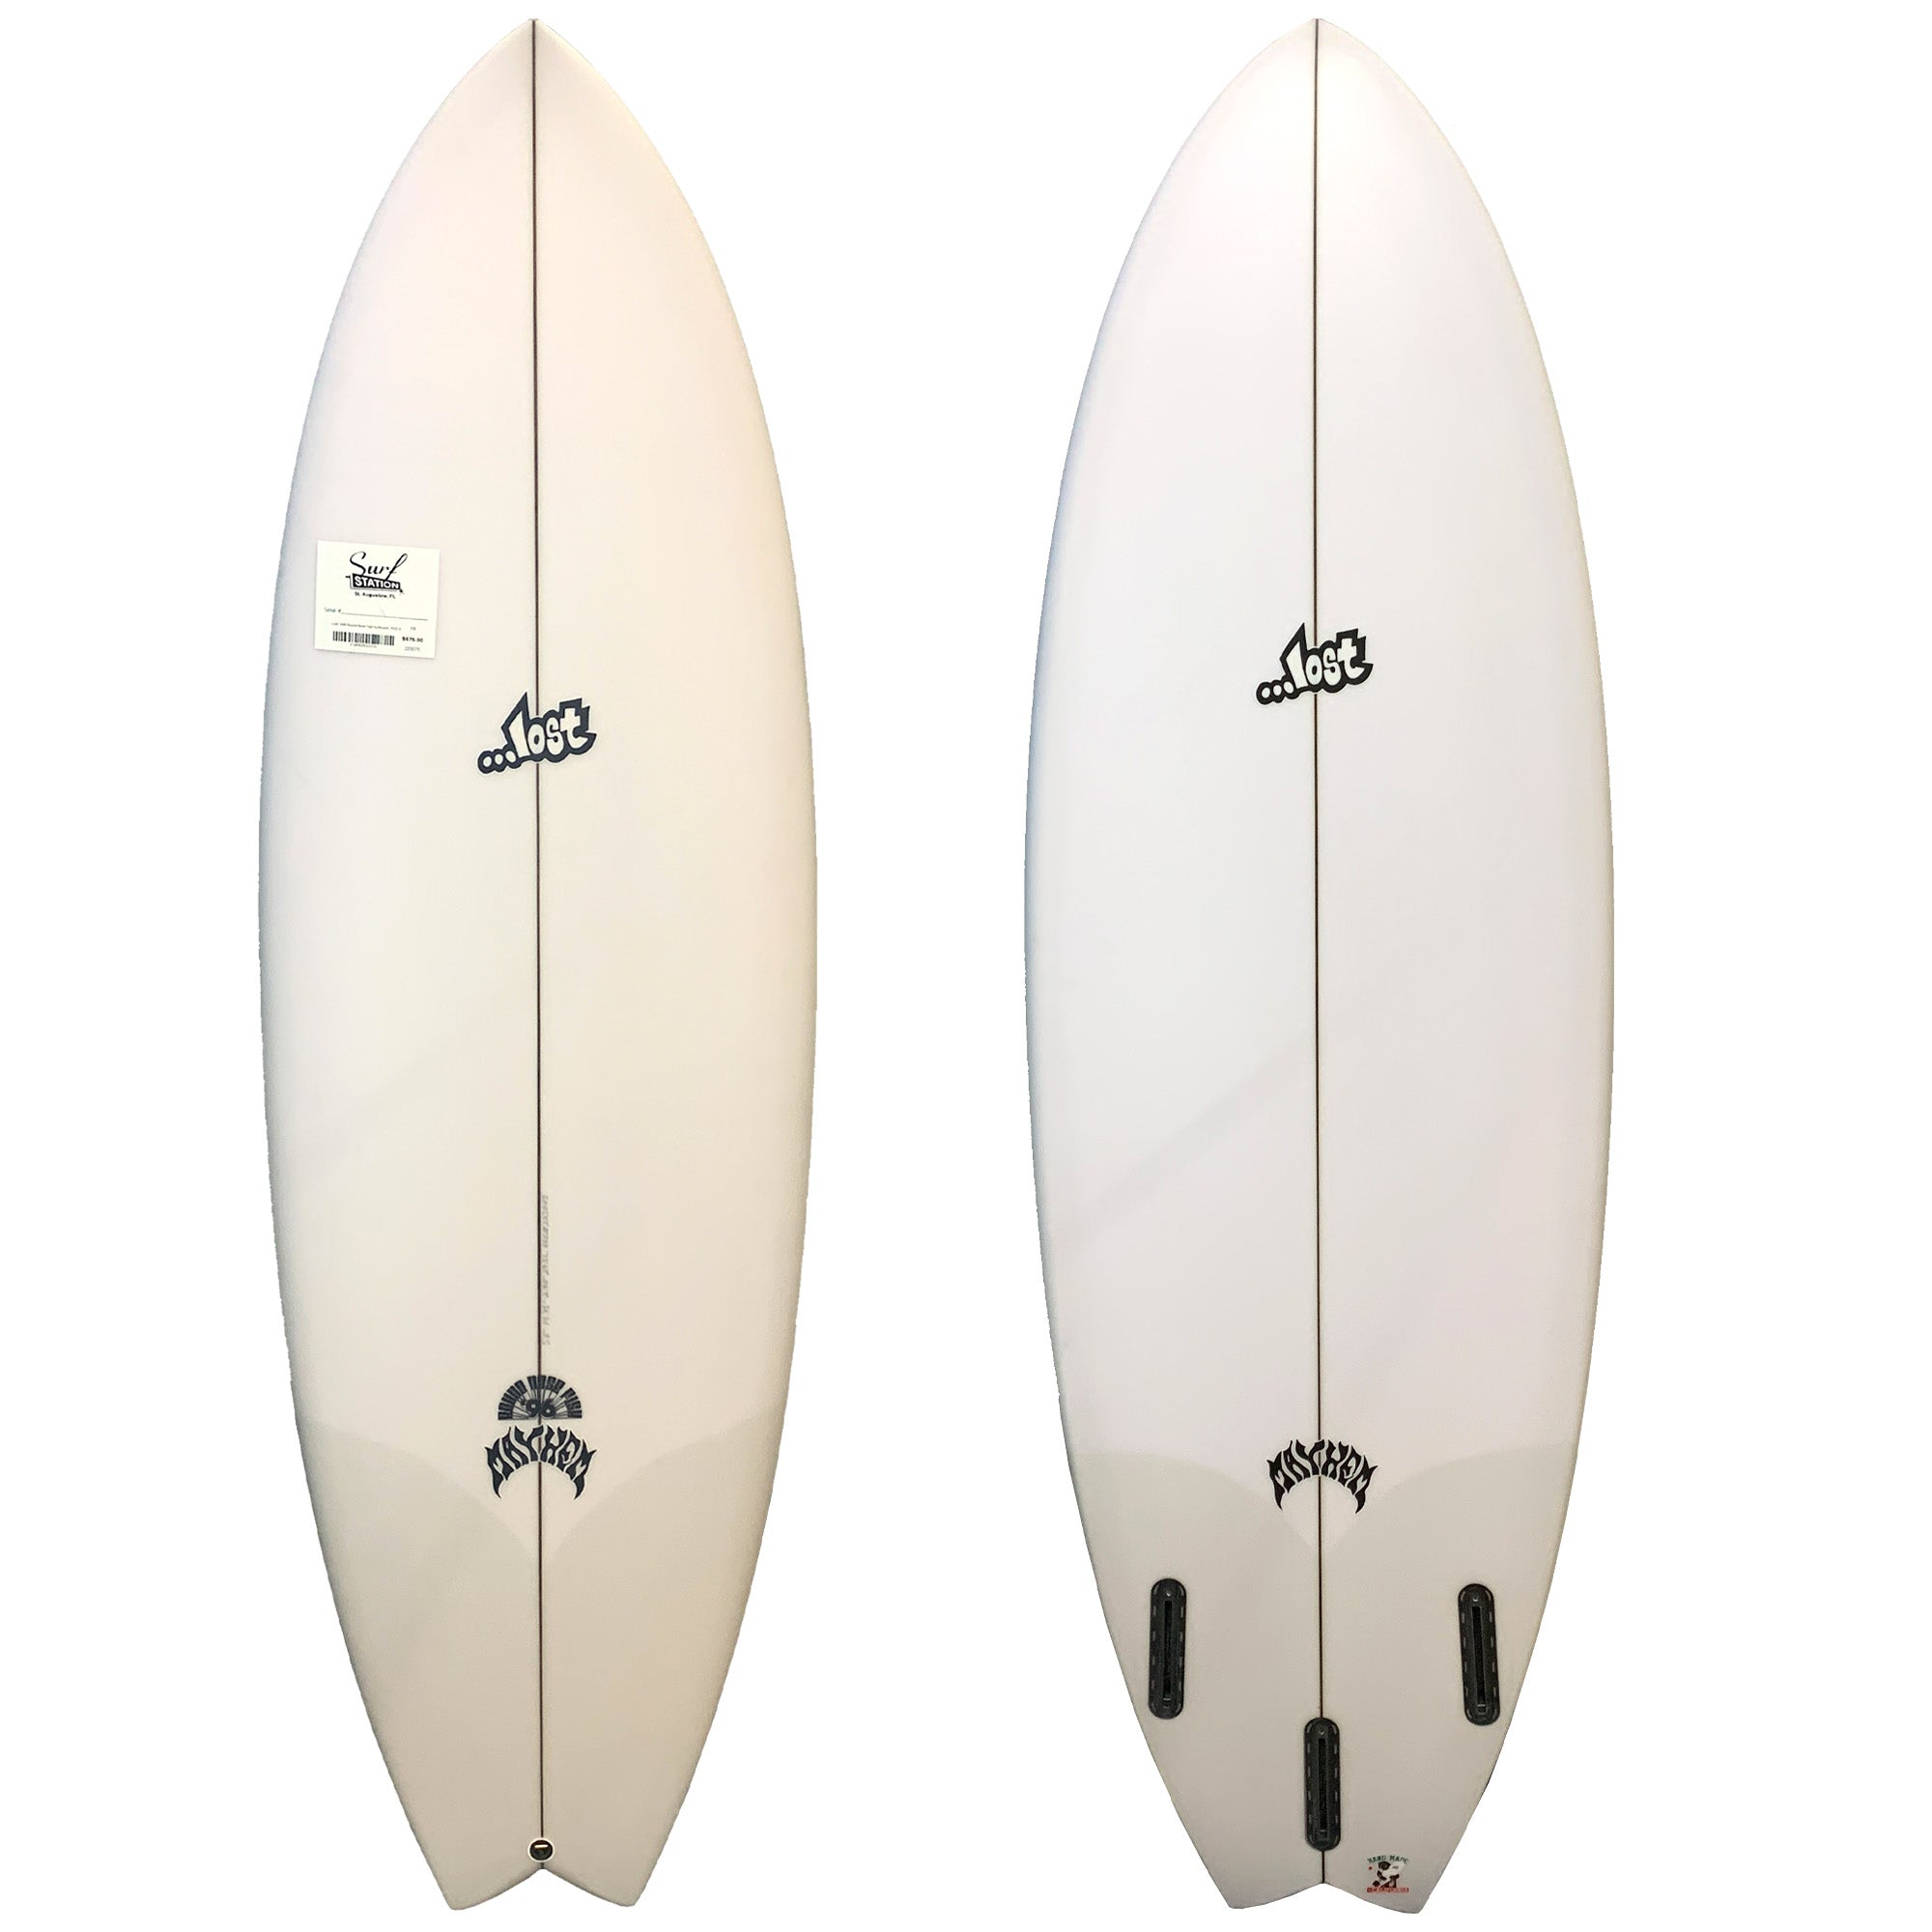 Lost Round Nose Fish '96 Surfboard - Futures